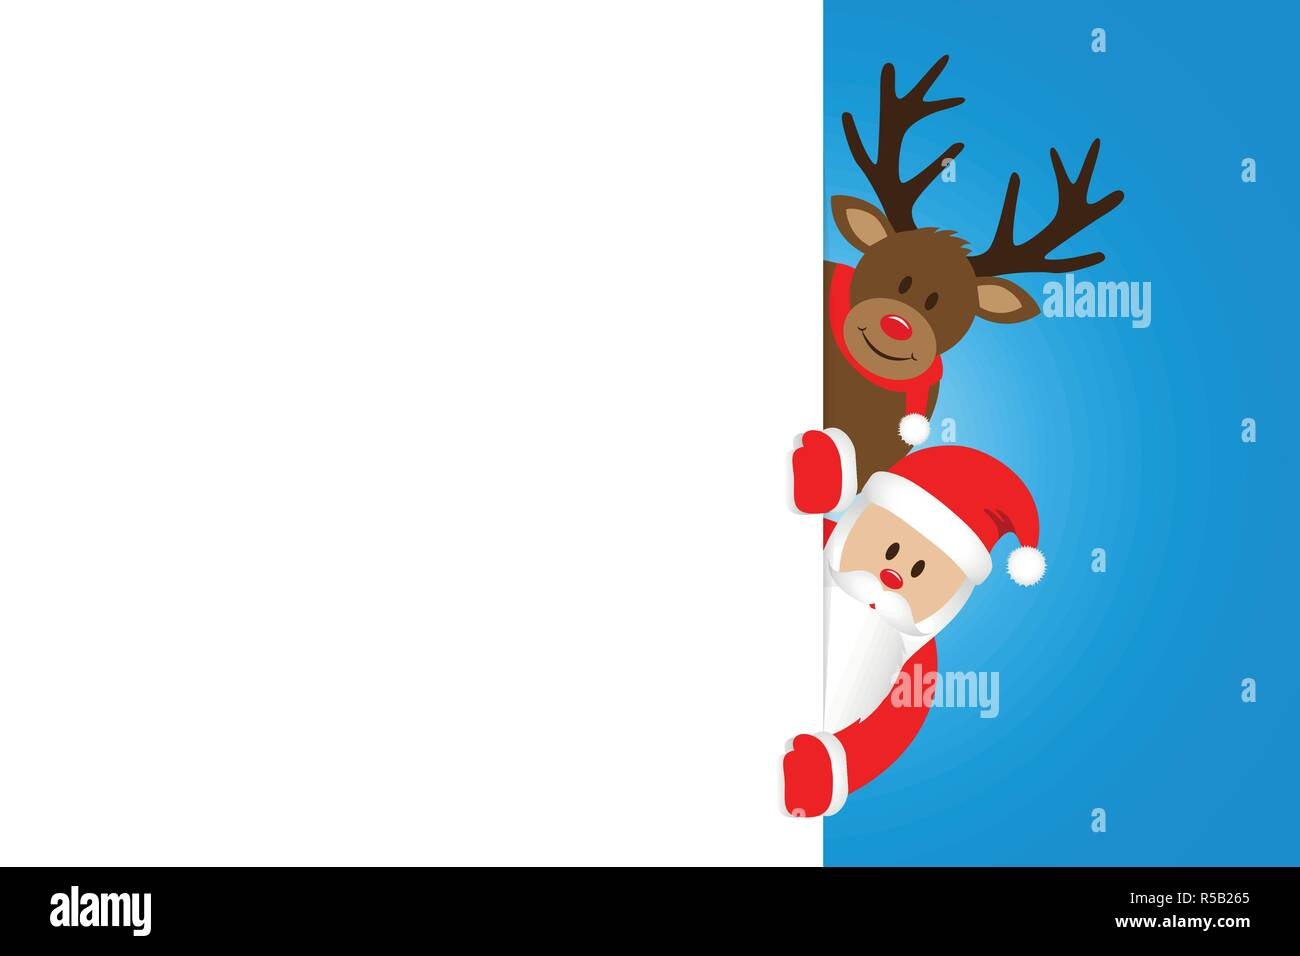 Christmas Images Cartoon.Santa And Reindeer Christmas Cartoon With White Banner